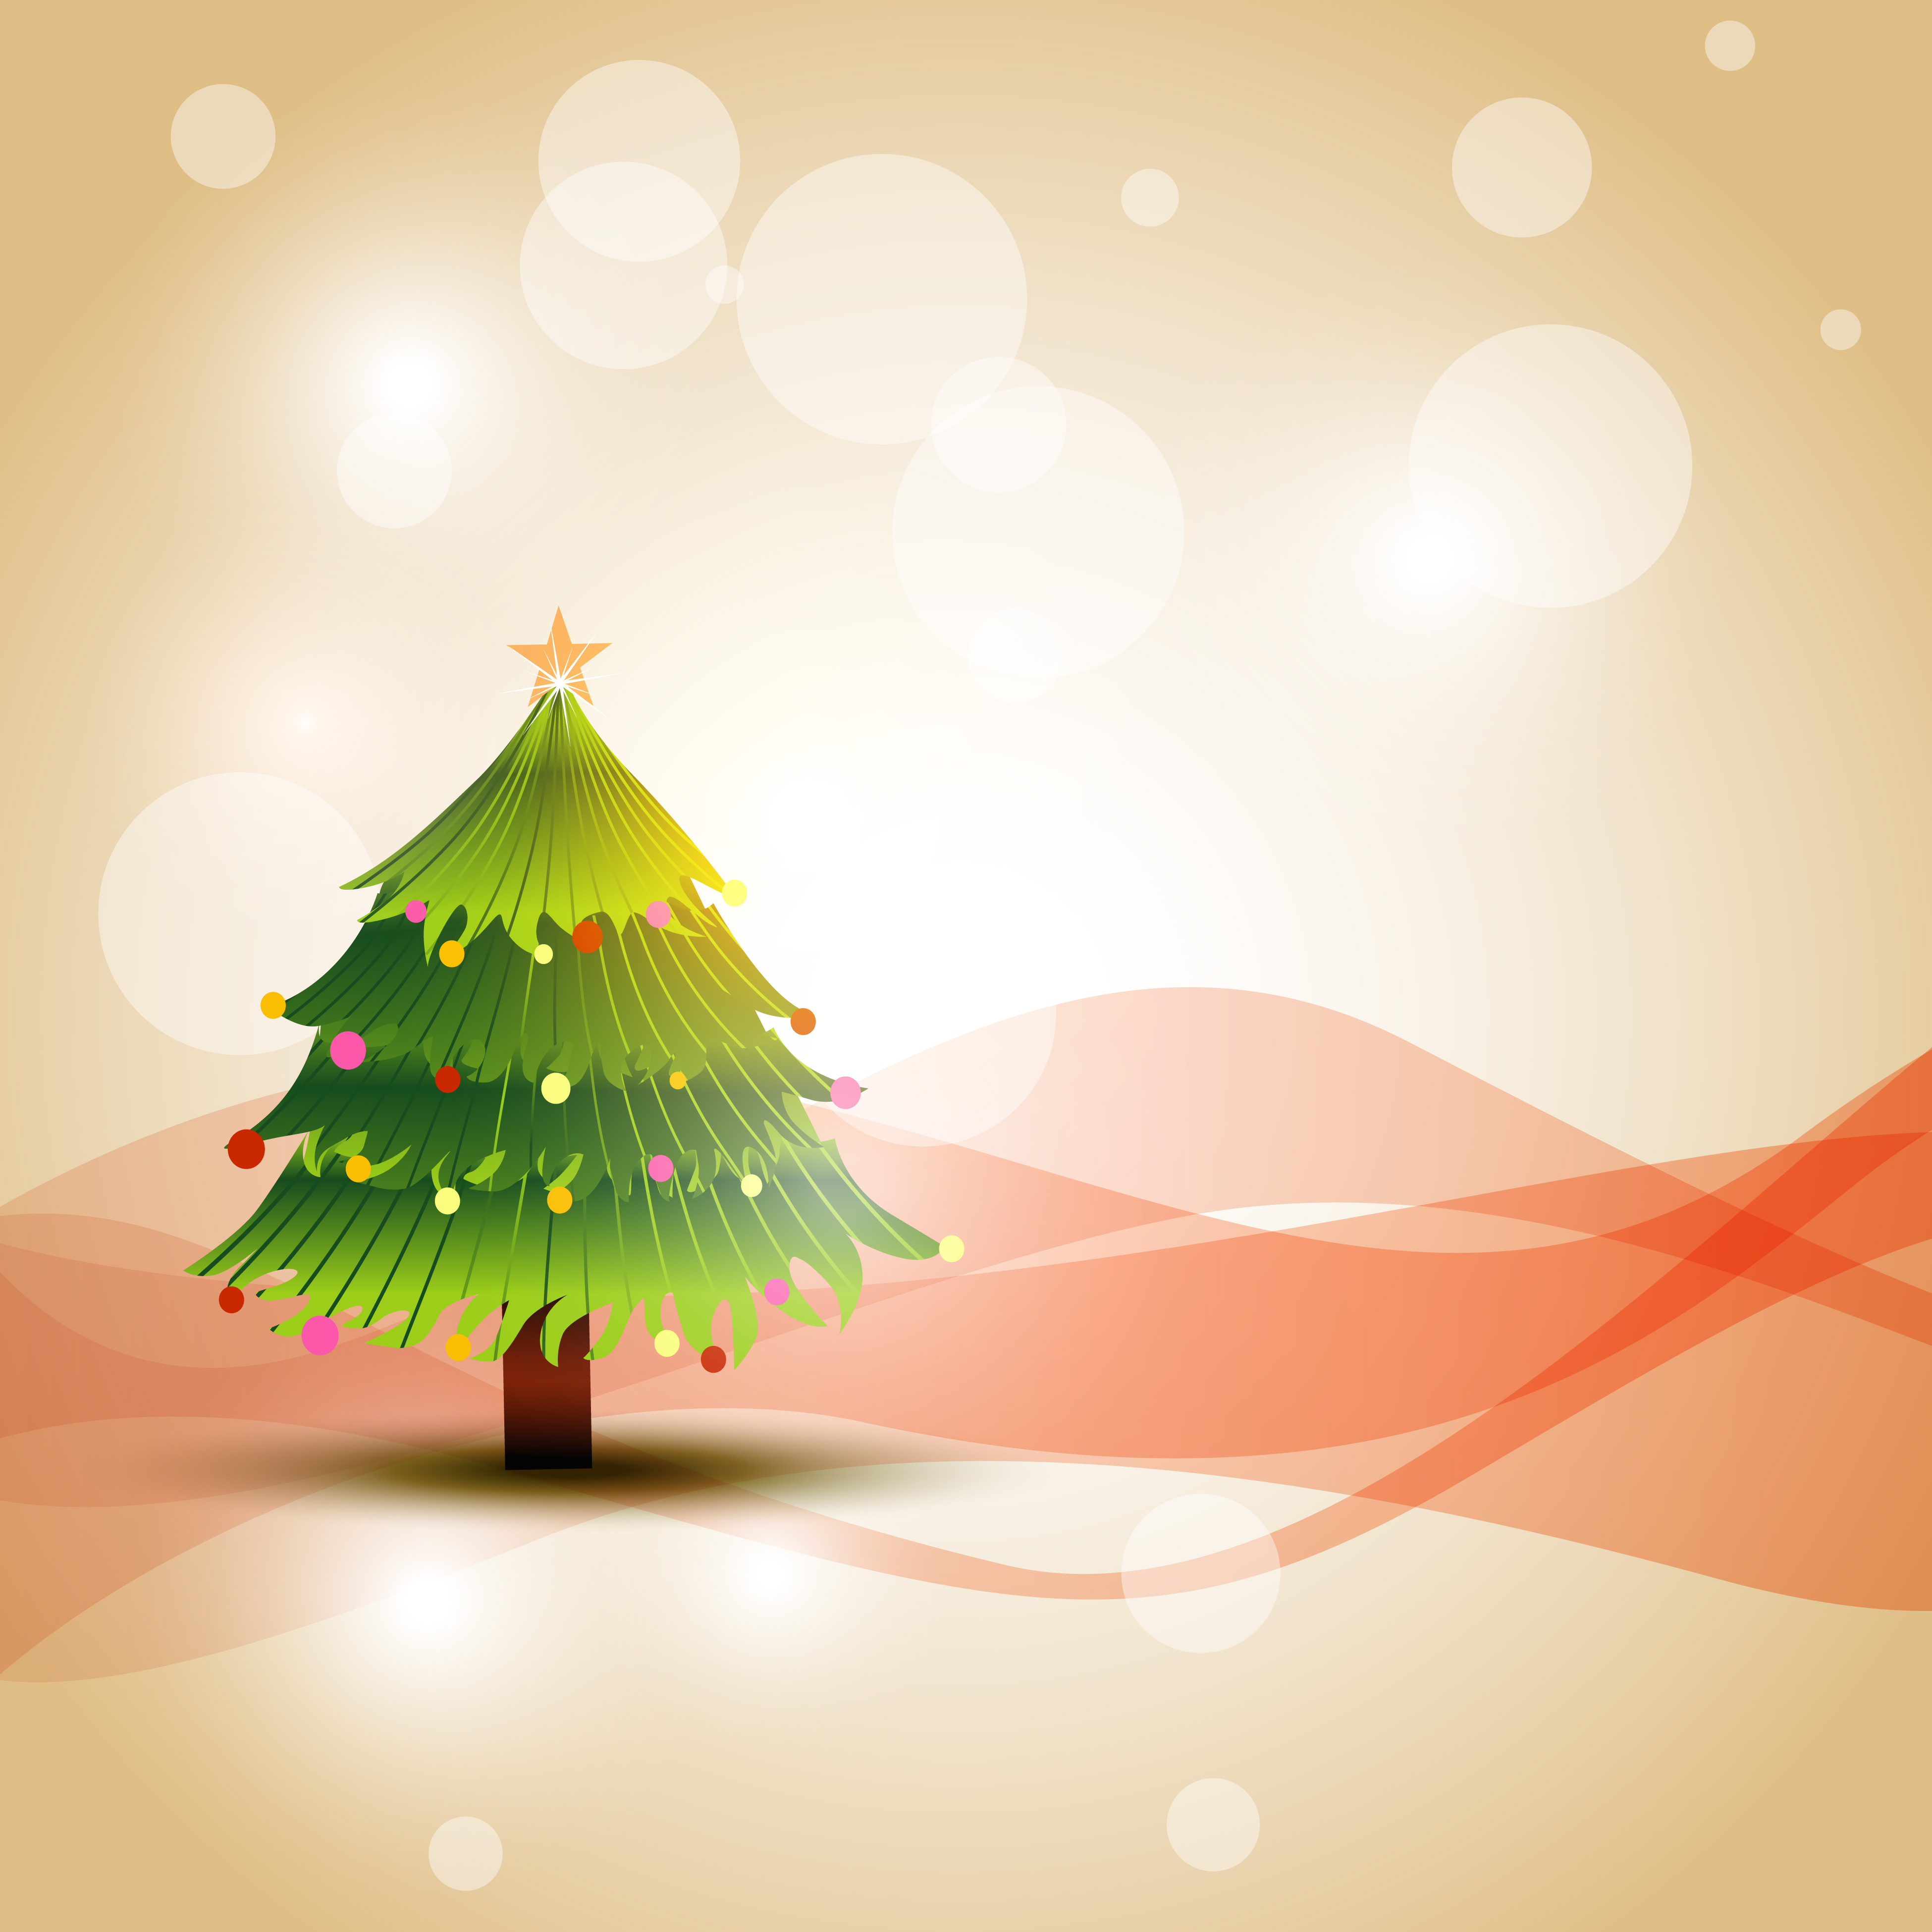 Beautiful Christmas Tree Pictures: Download Free Vectors, Clipart